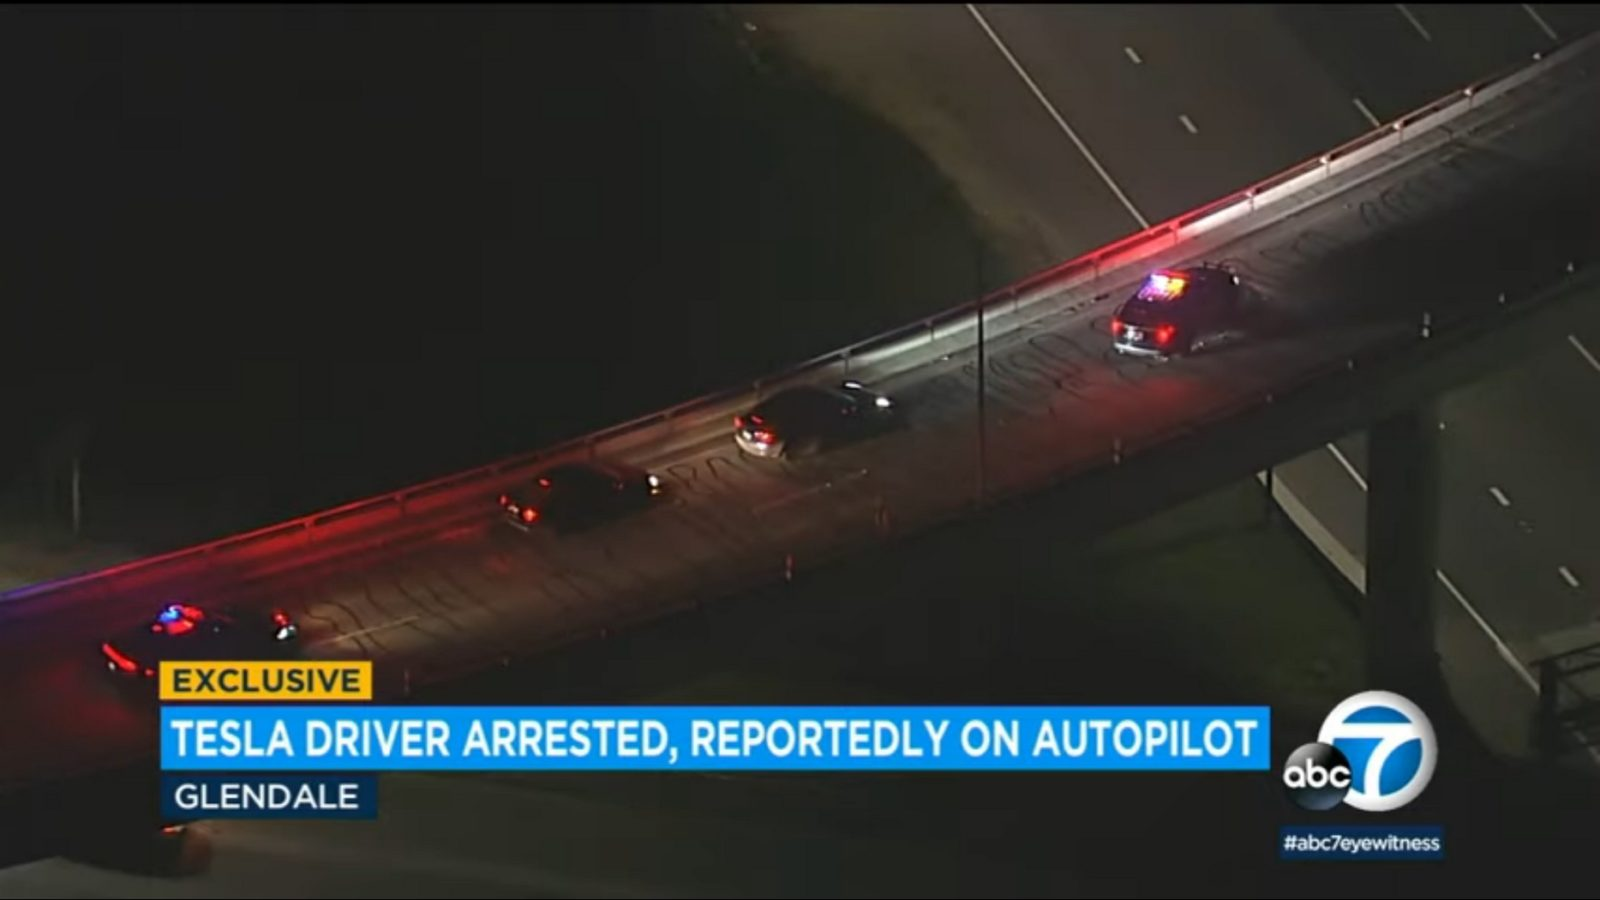 tesla-owner-gets-arrested-for-dui-in-the-middle-of-freeway-while-using-autopilot